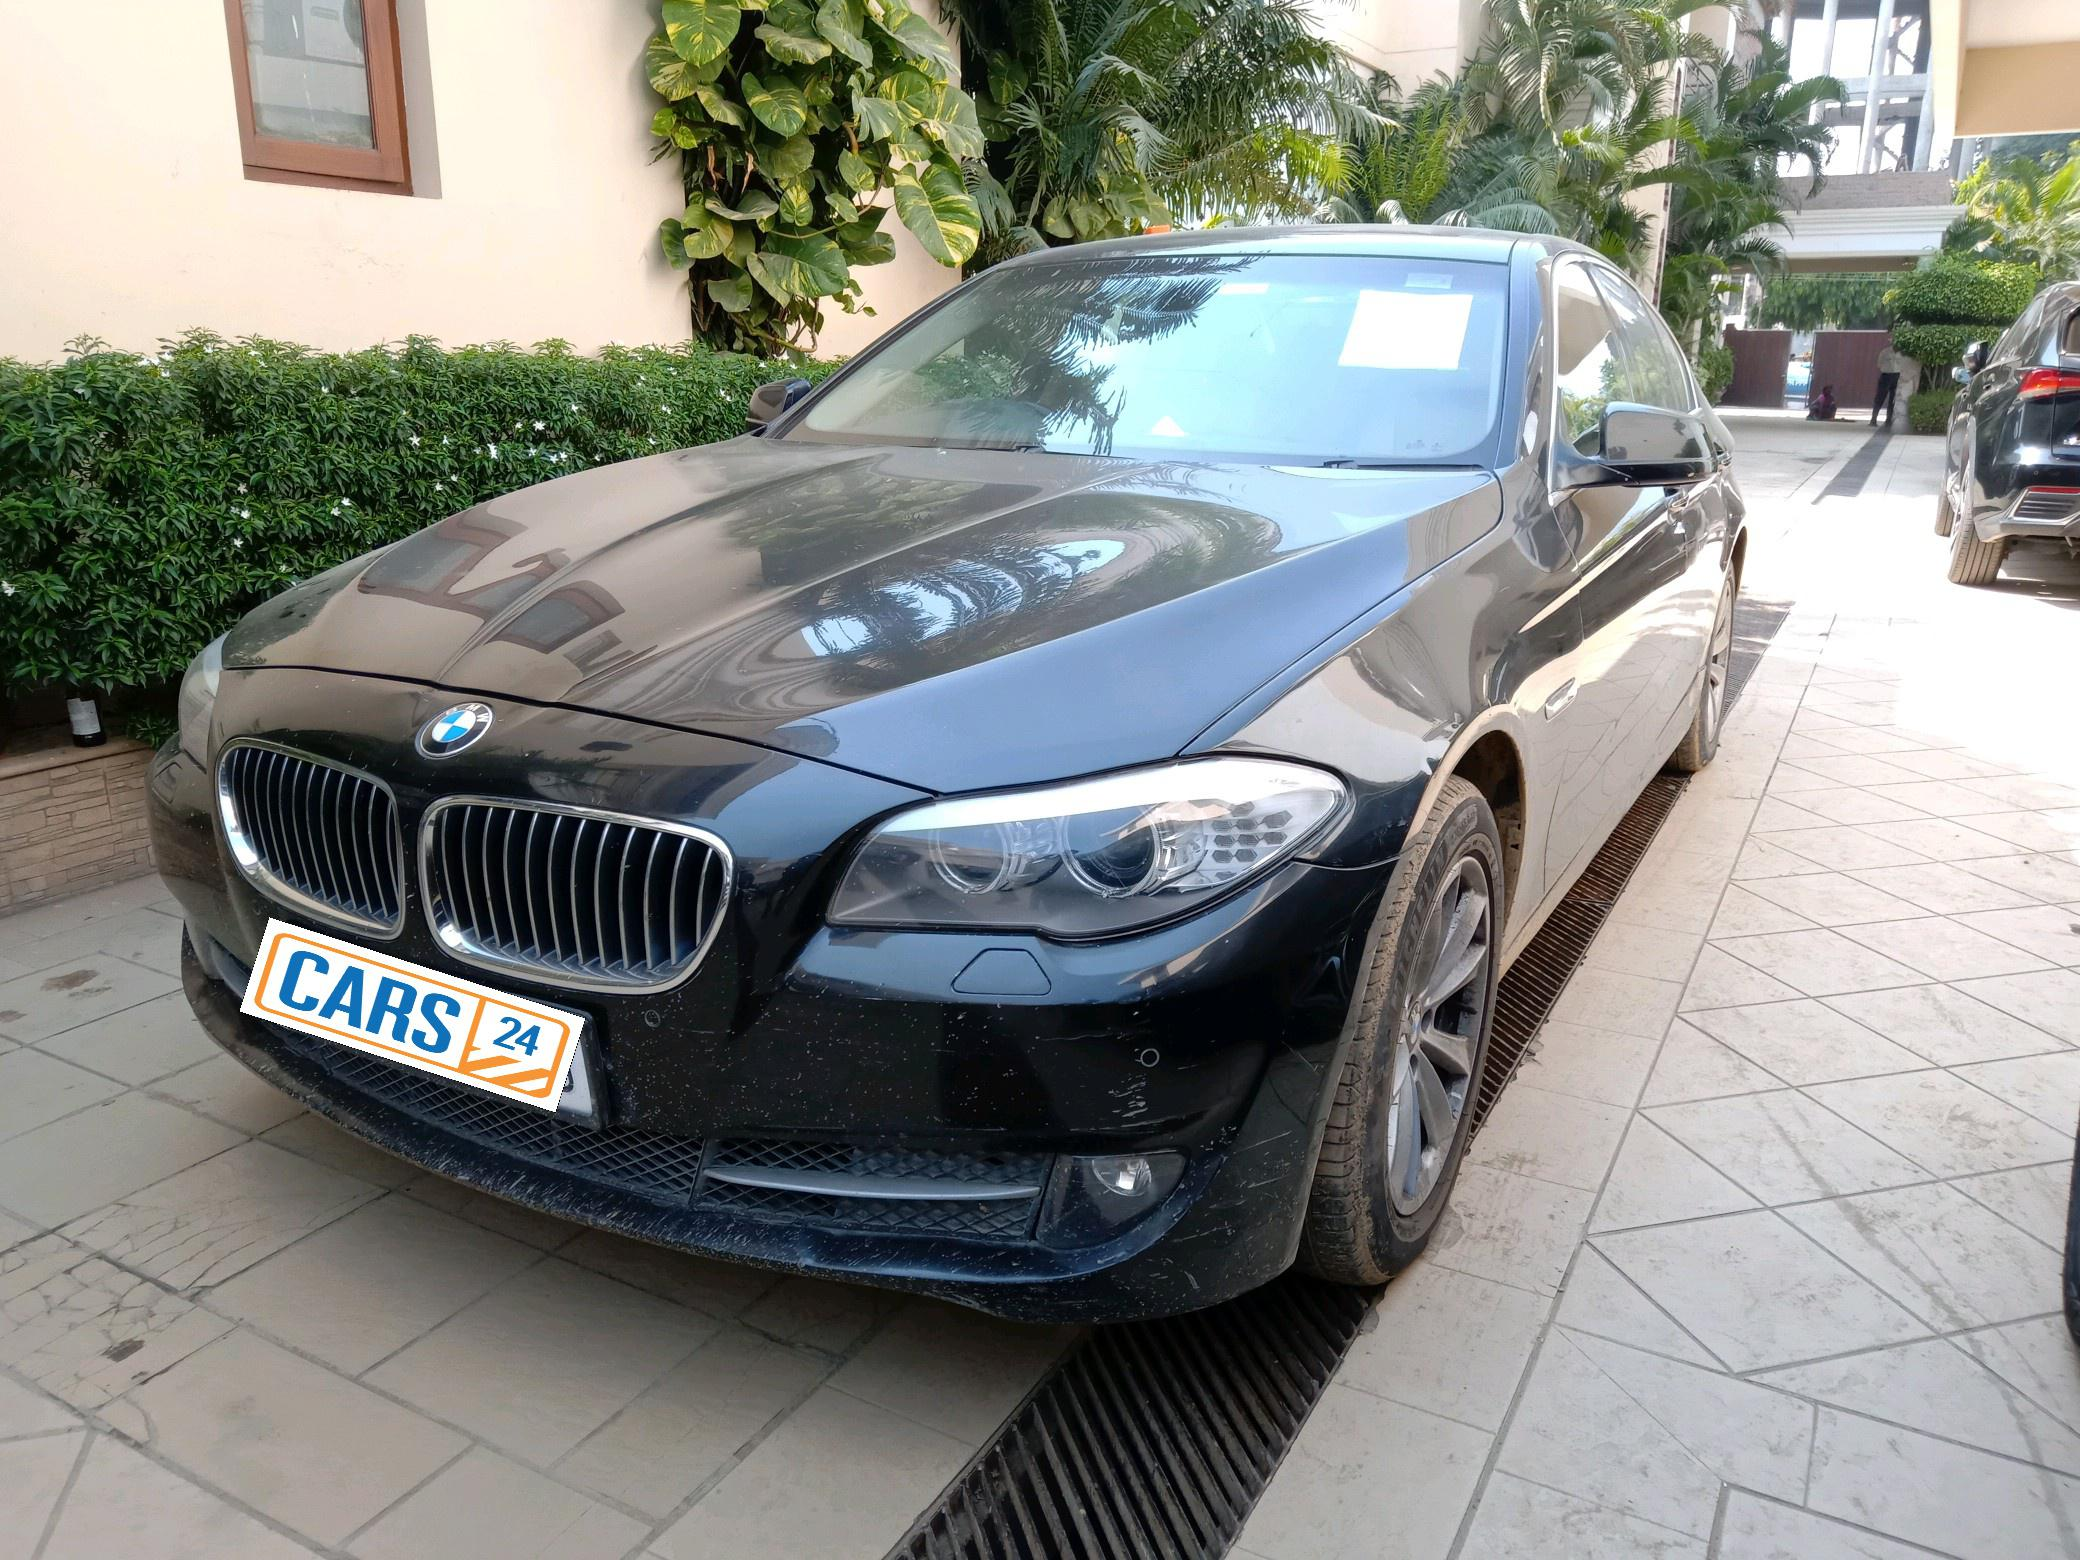 Buy Used Bmw 5 Series In Bareilly Cars24